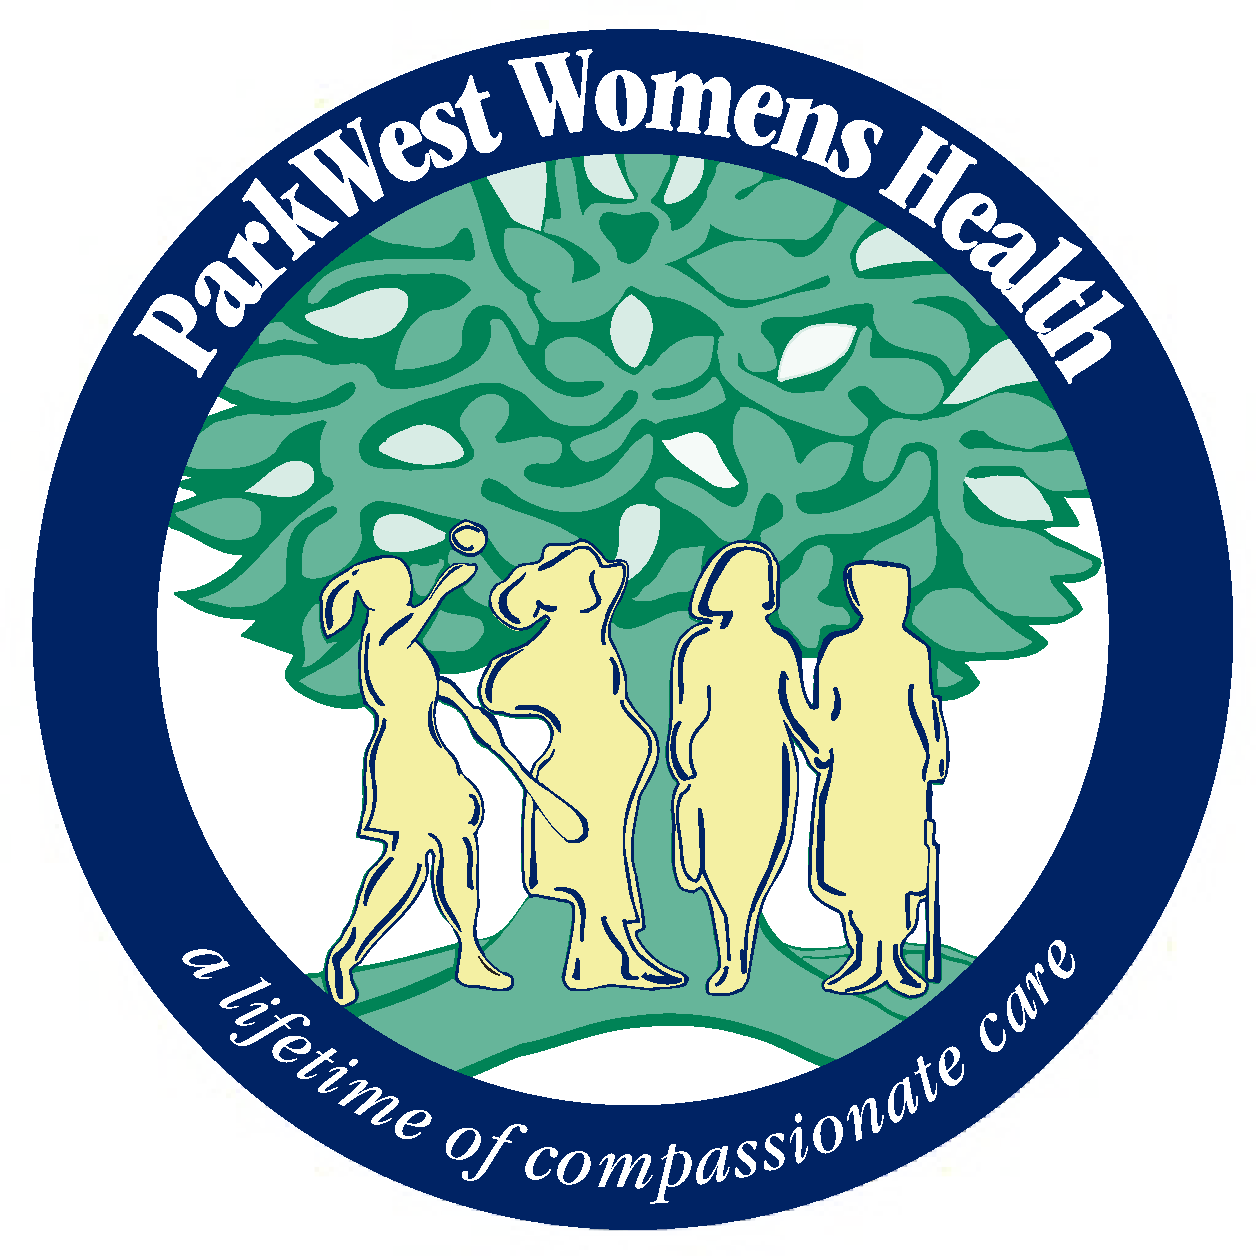 Parkwest Women's Health